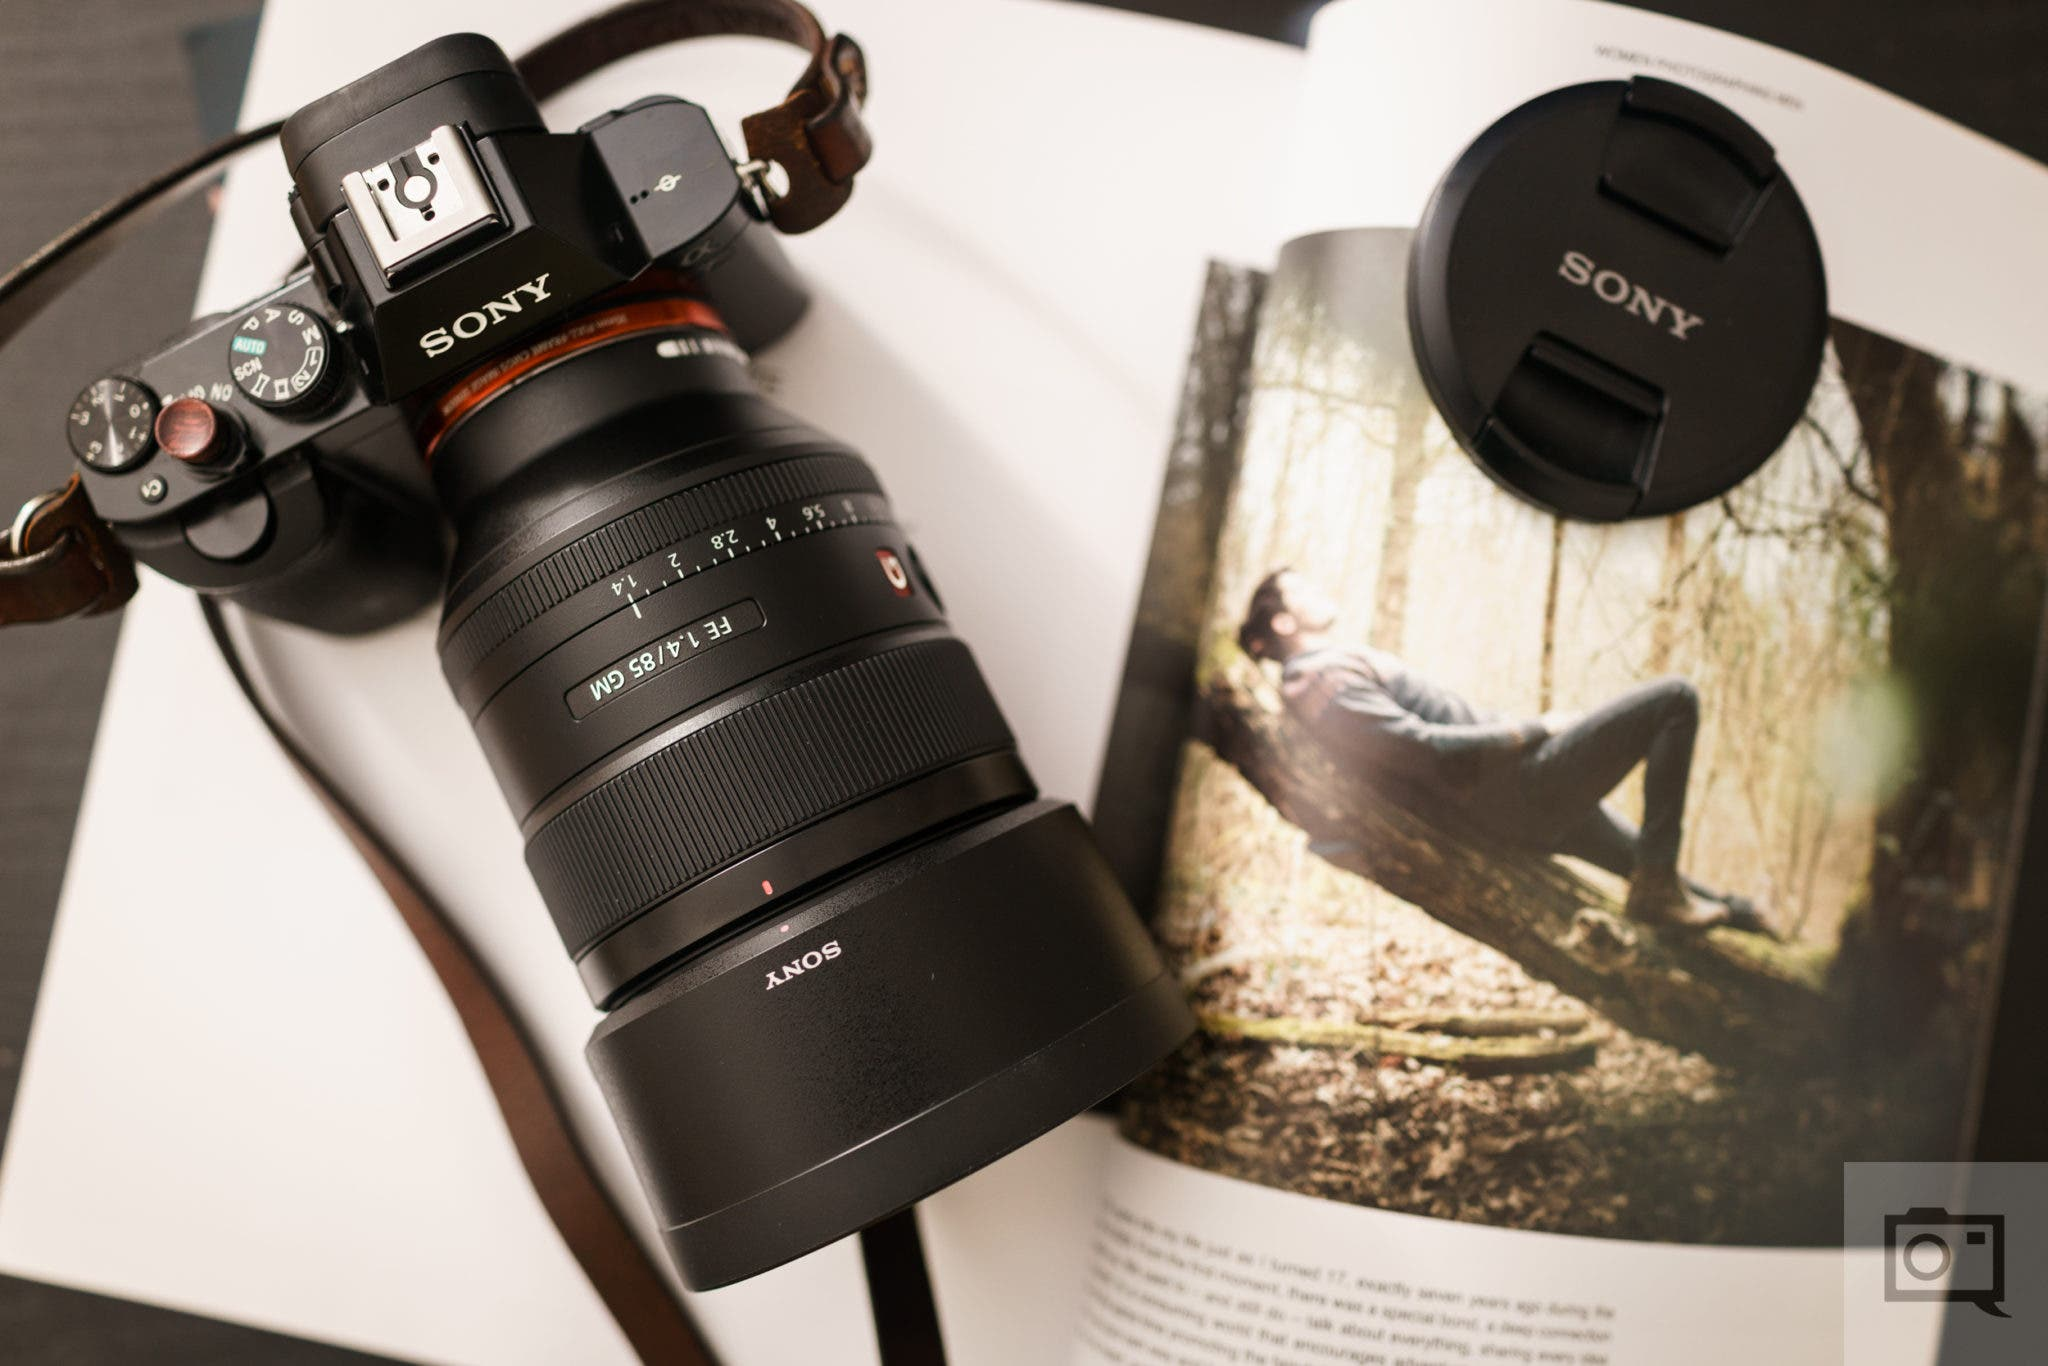 The 10 Best Lenses According to DXOMark (July 2020 Edition)